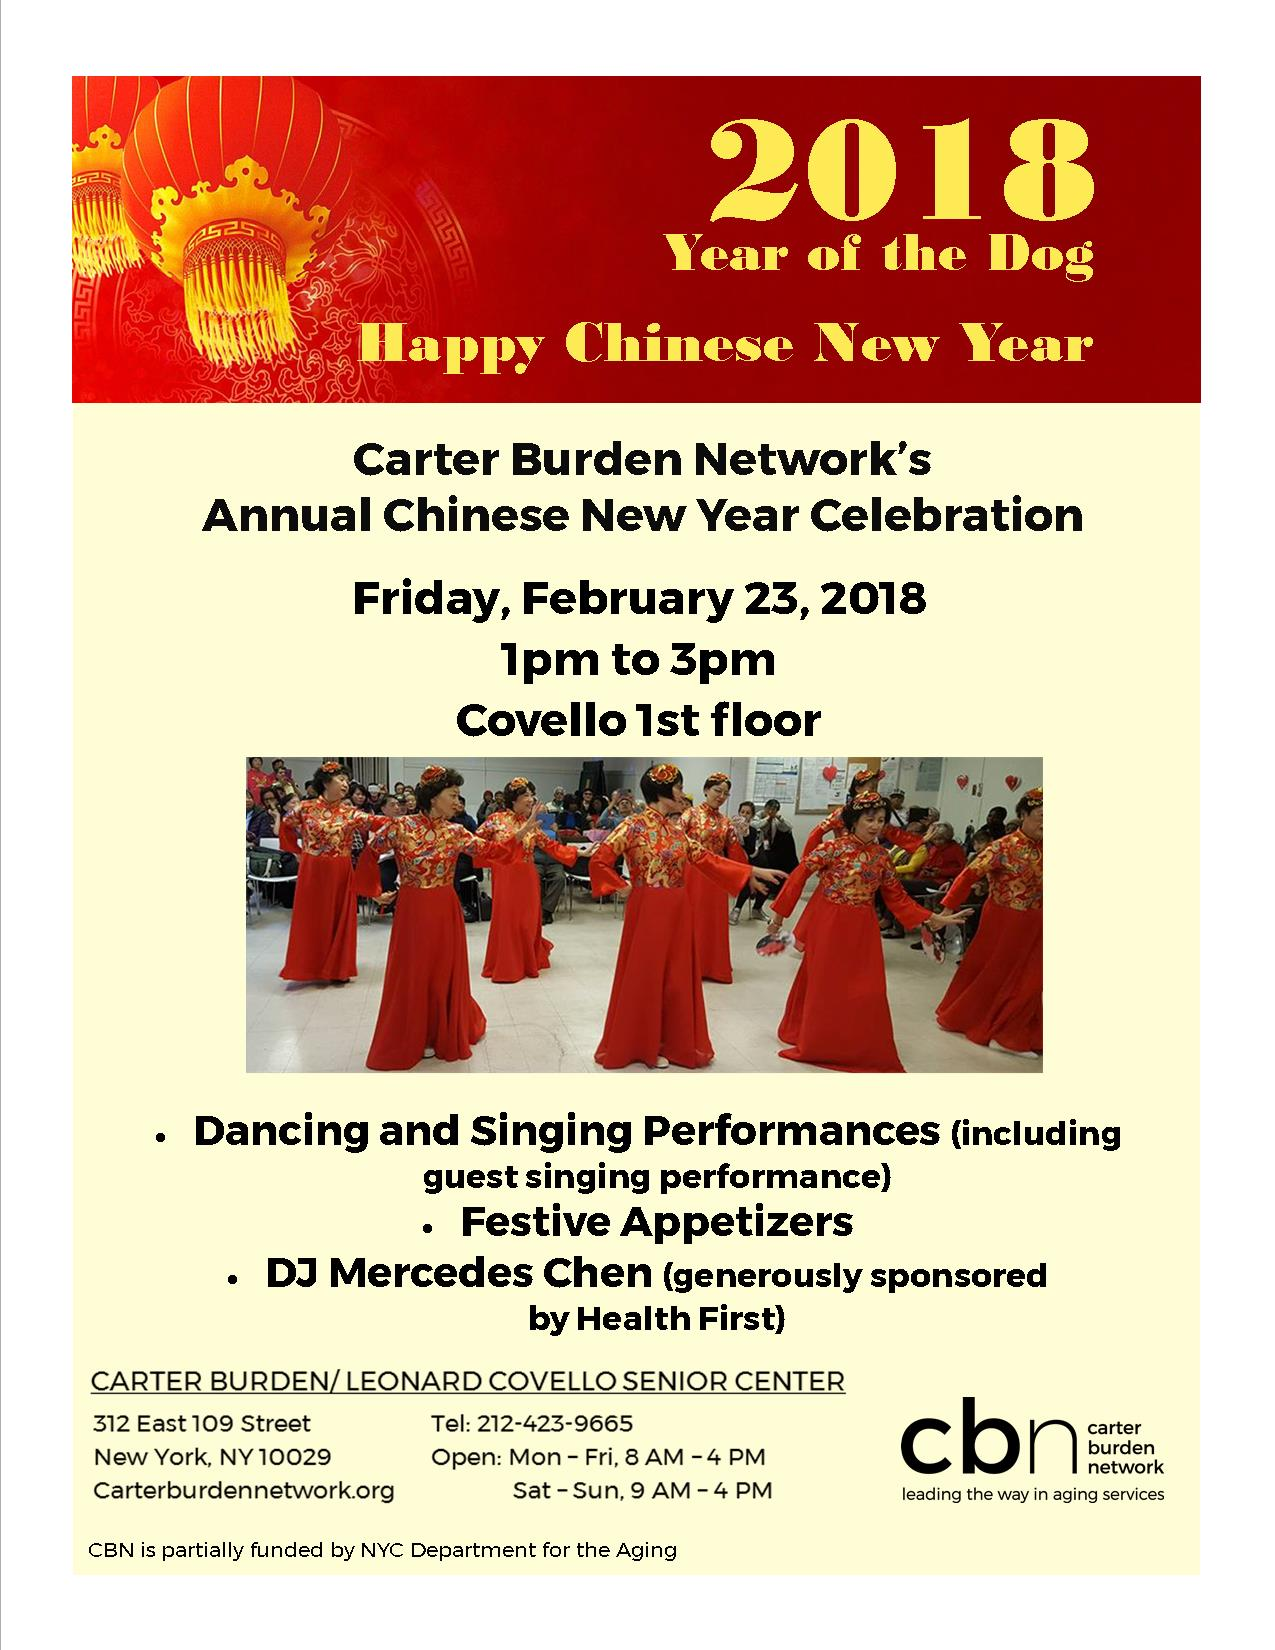 Chinese New Year 2018 flyer updated 1.23.18.jpg